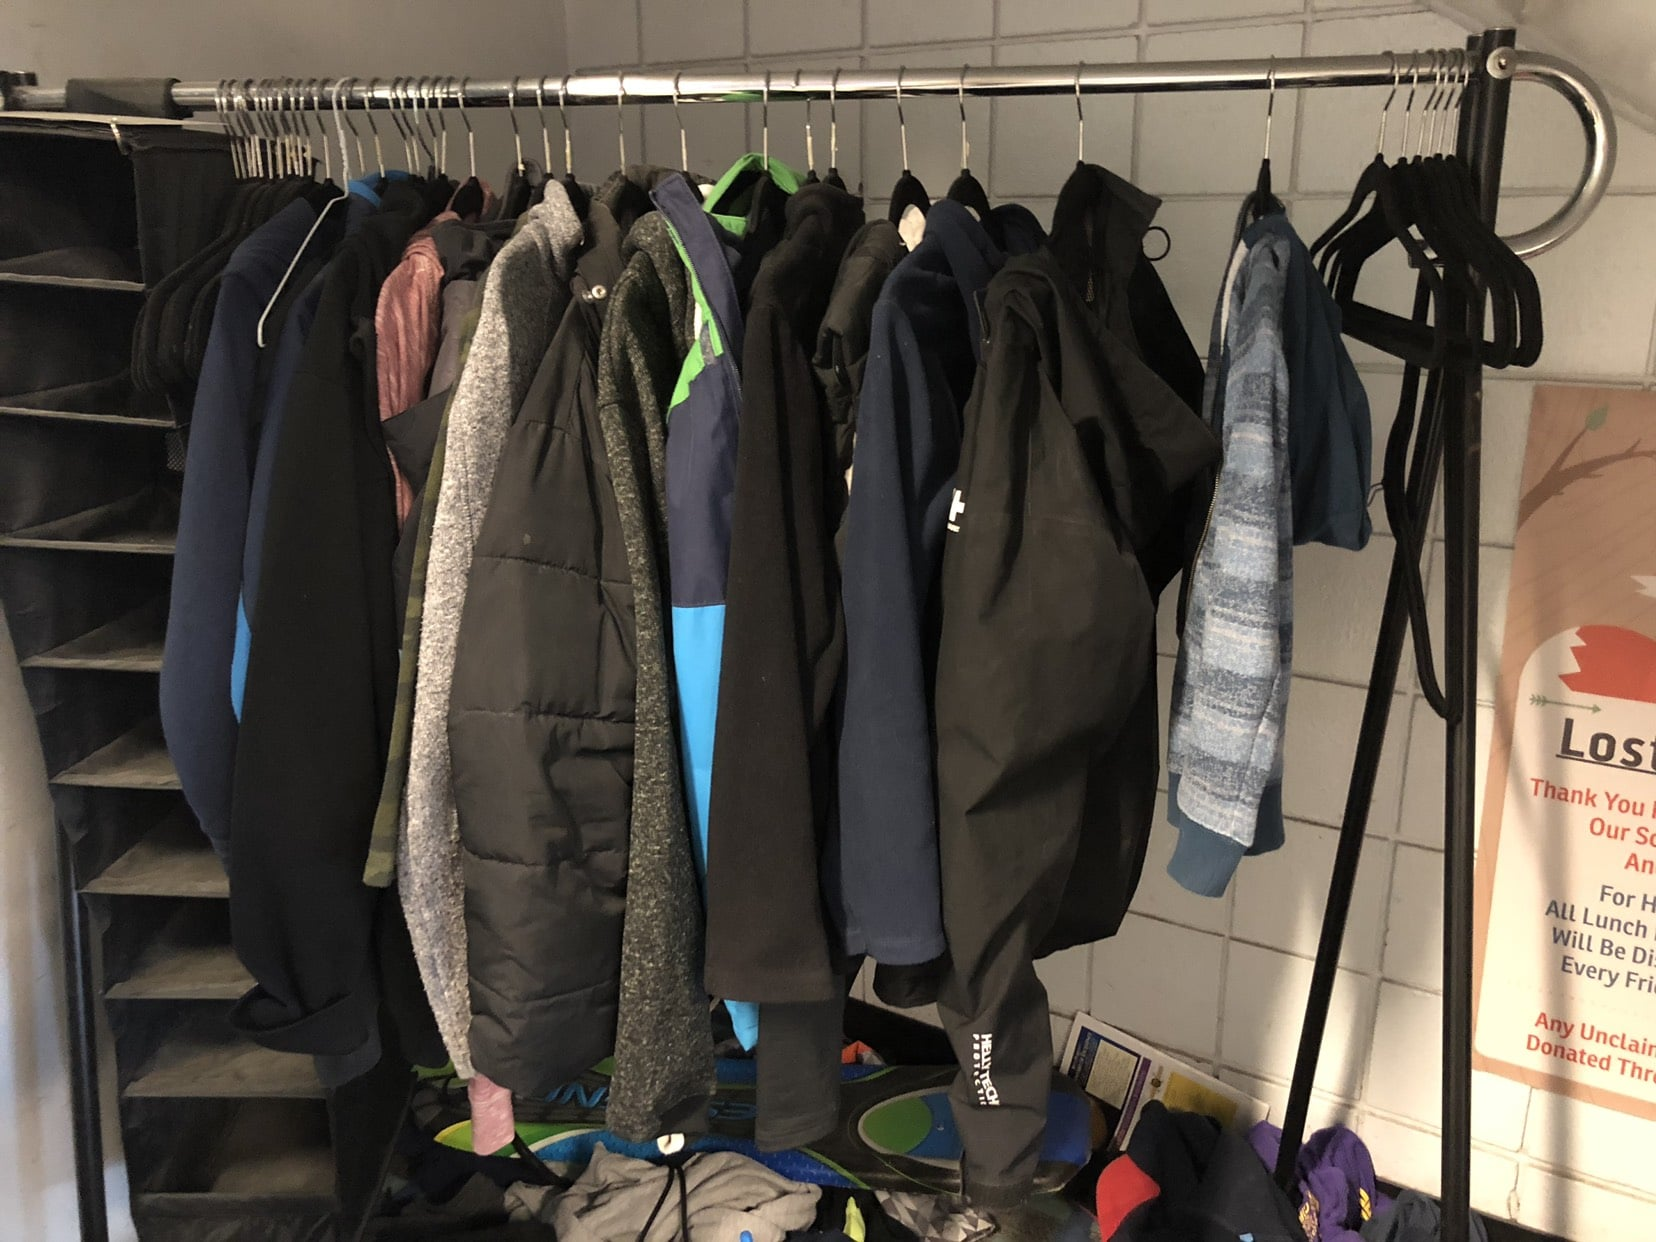 MH Lost and Found Photo June 2019